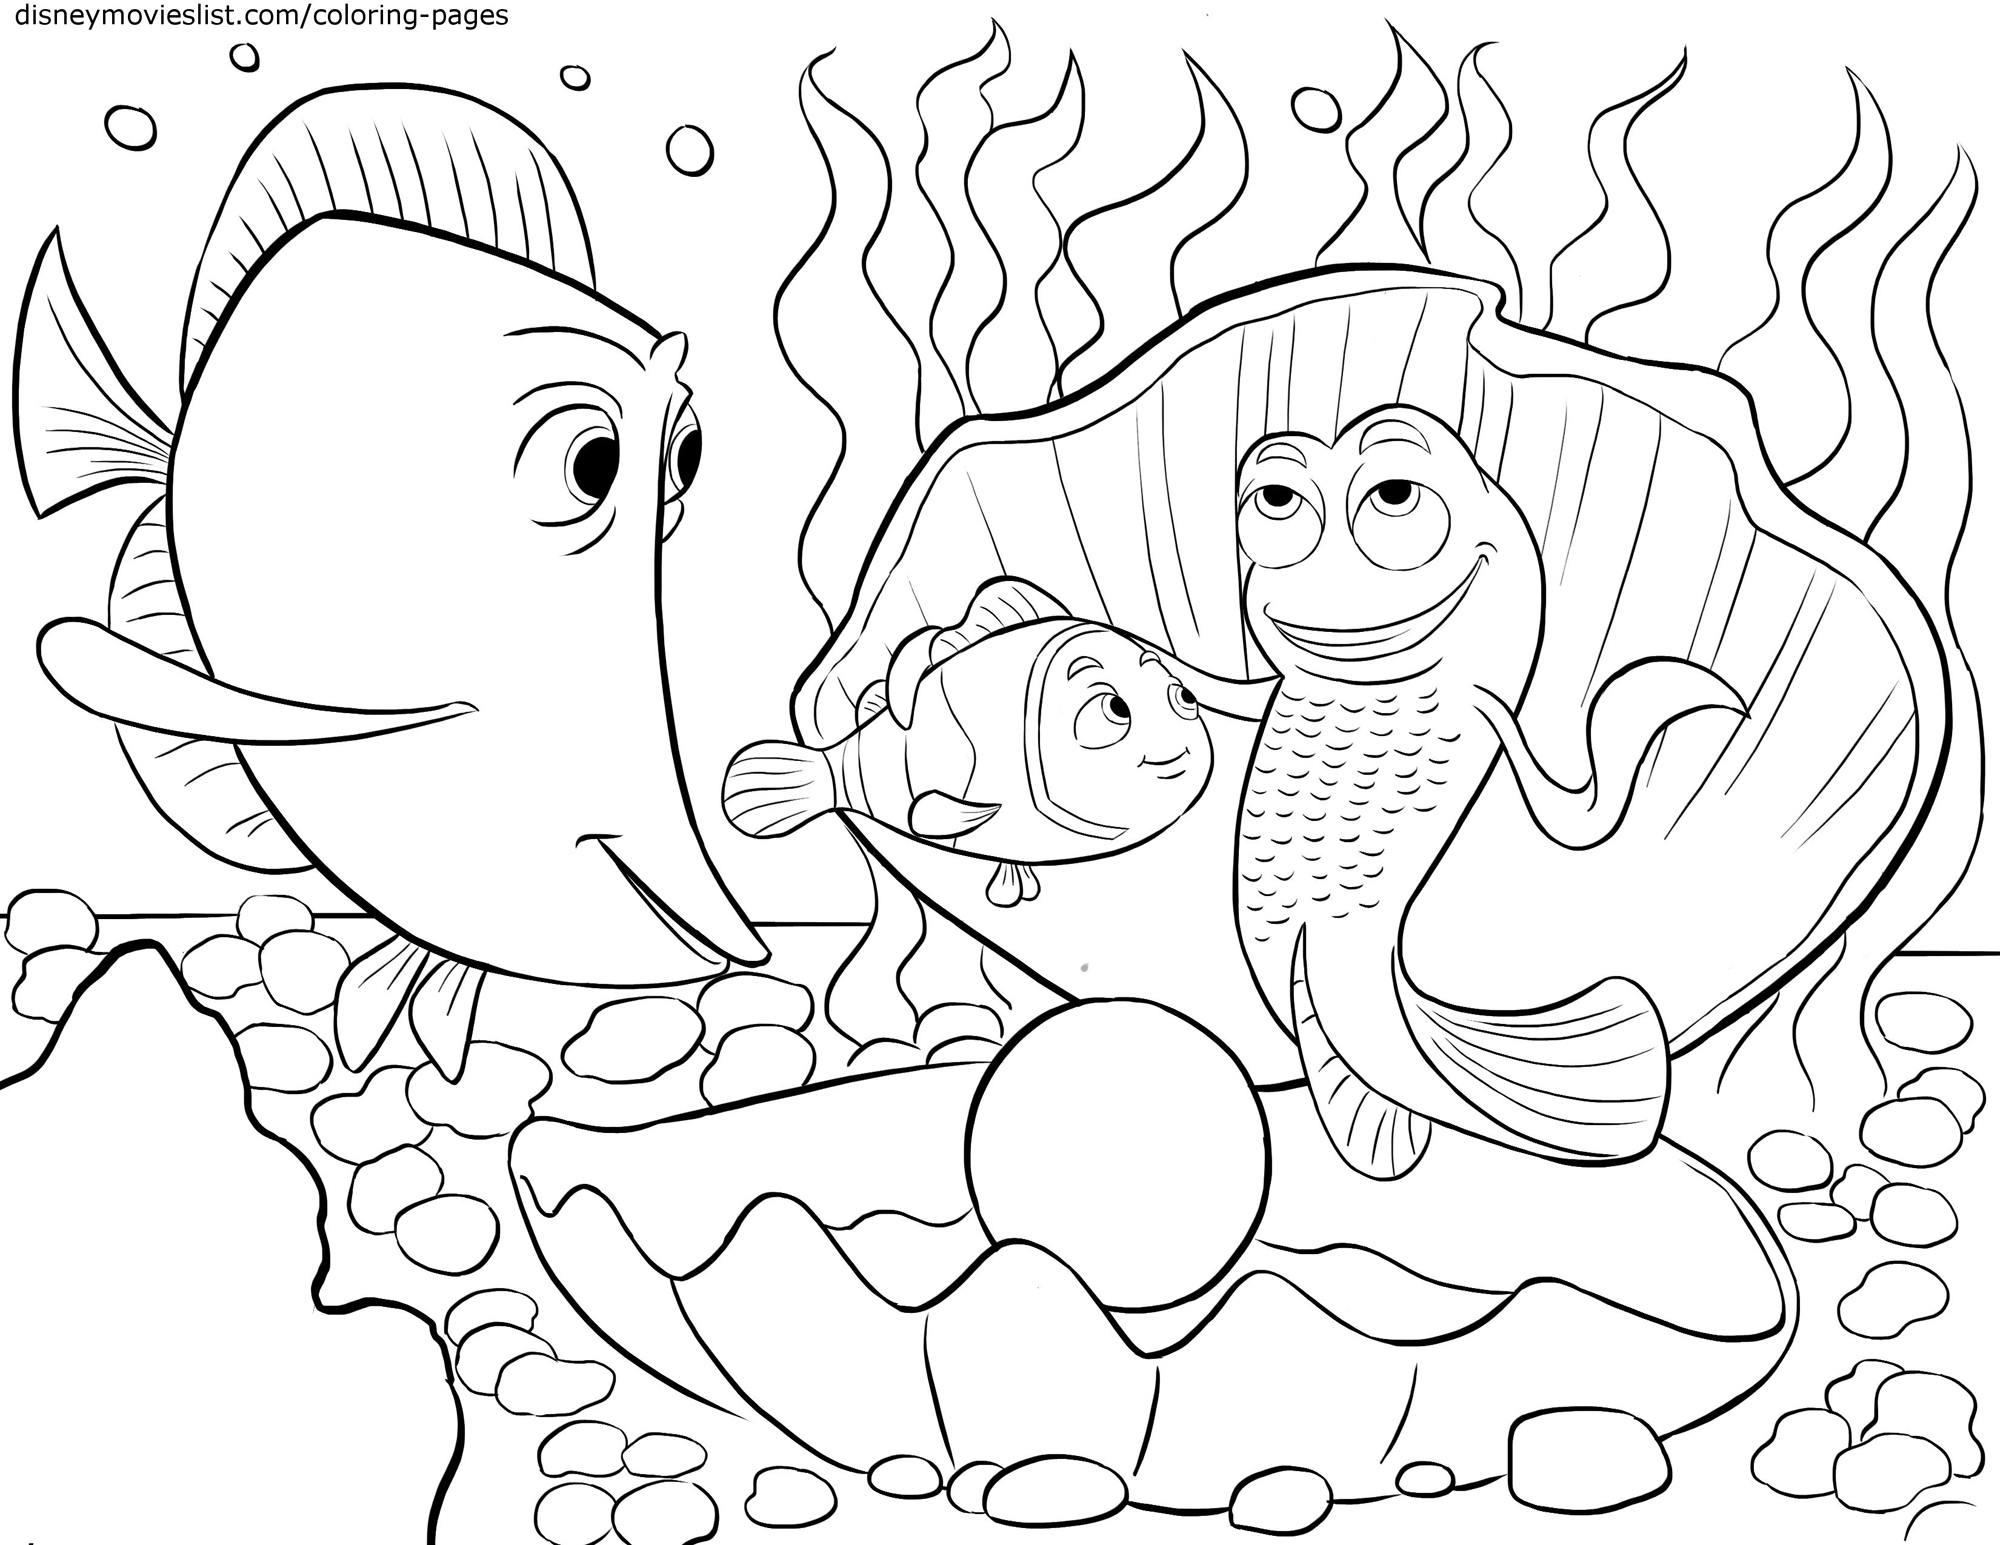 Gurgle - Finding Nemo Coloring Pages - Disney Movies List